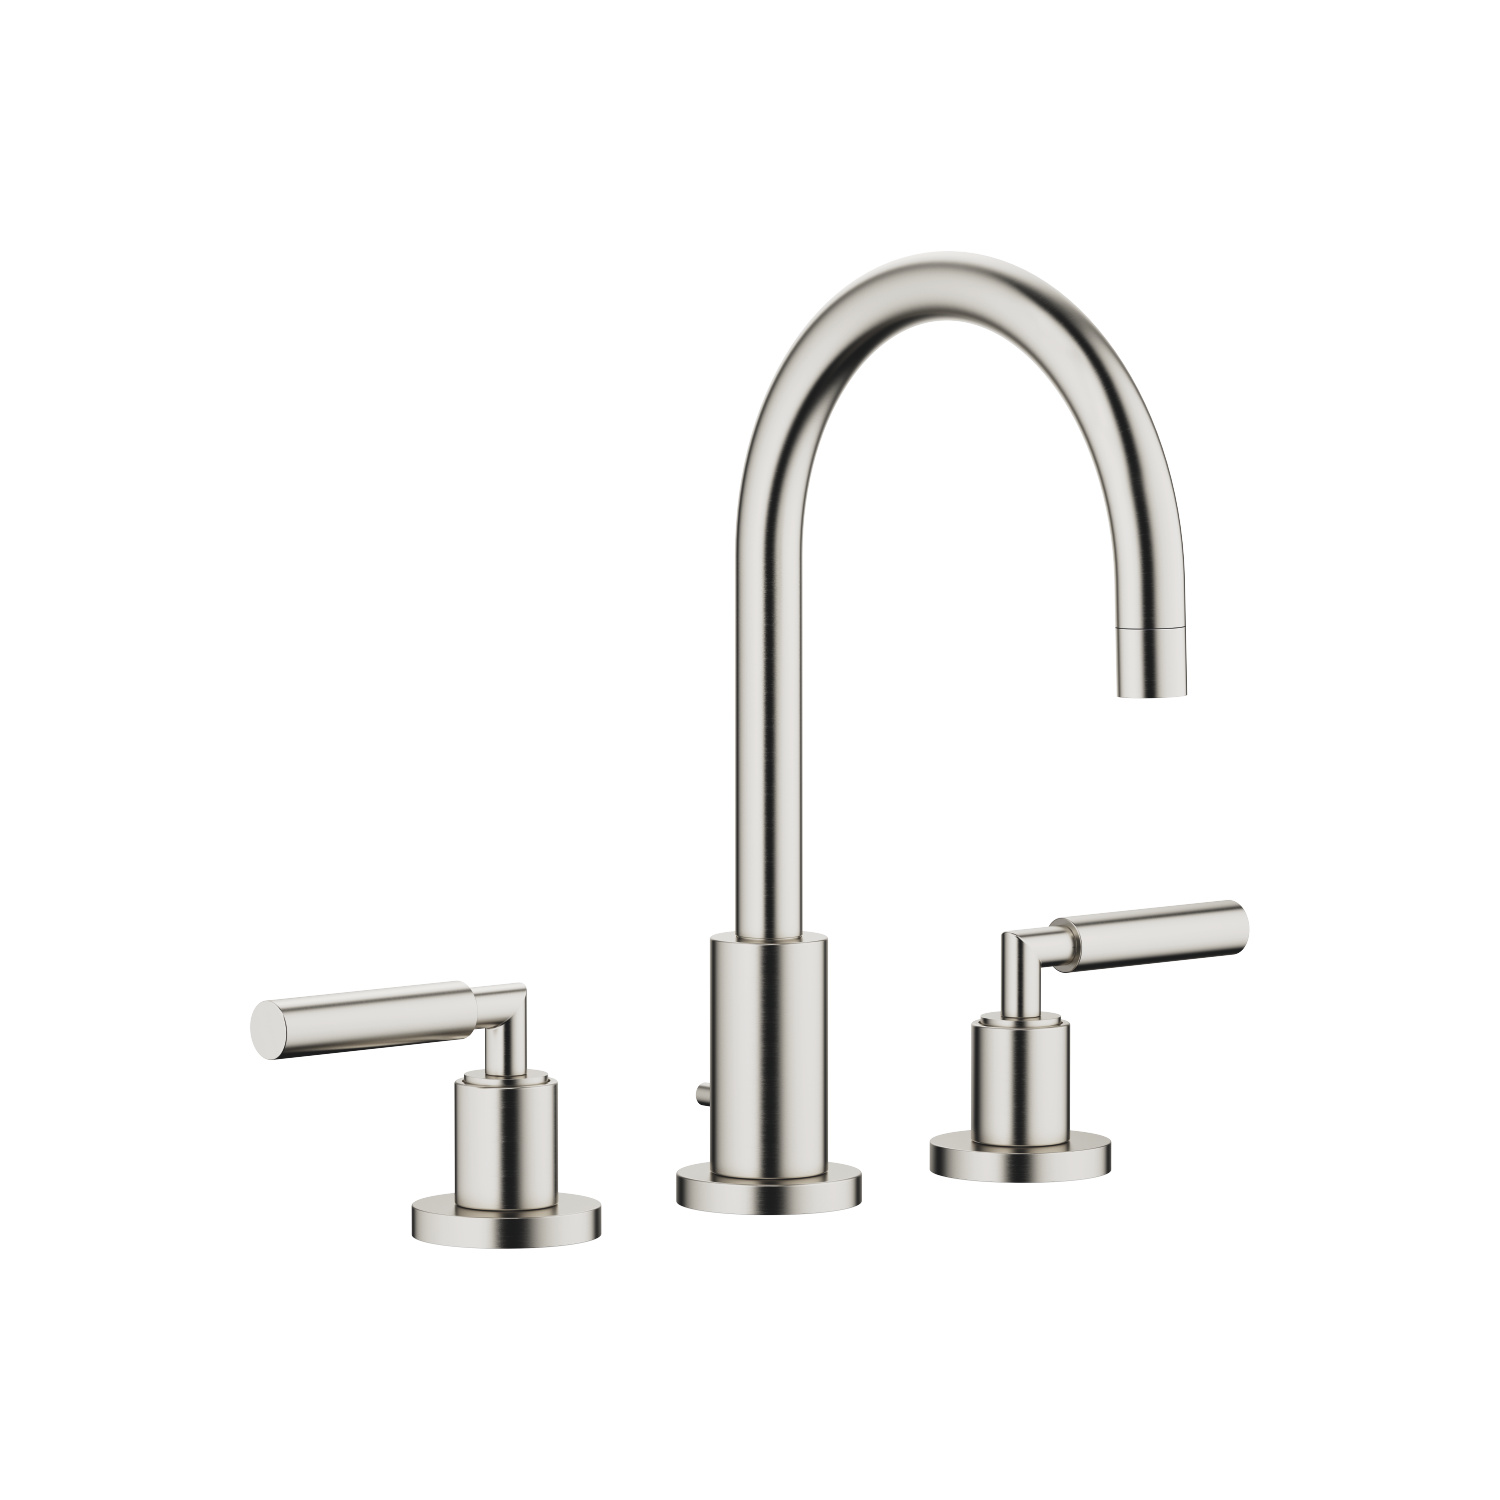 Three-hole basin mixer with pop-up waste - platinum matt - 20 713 882-06